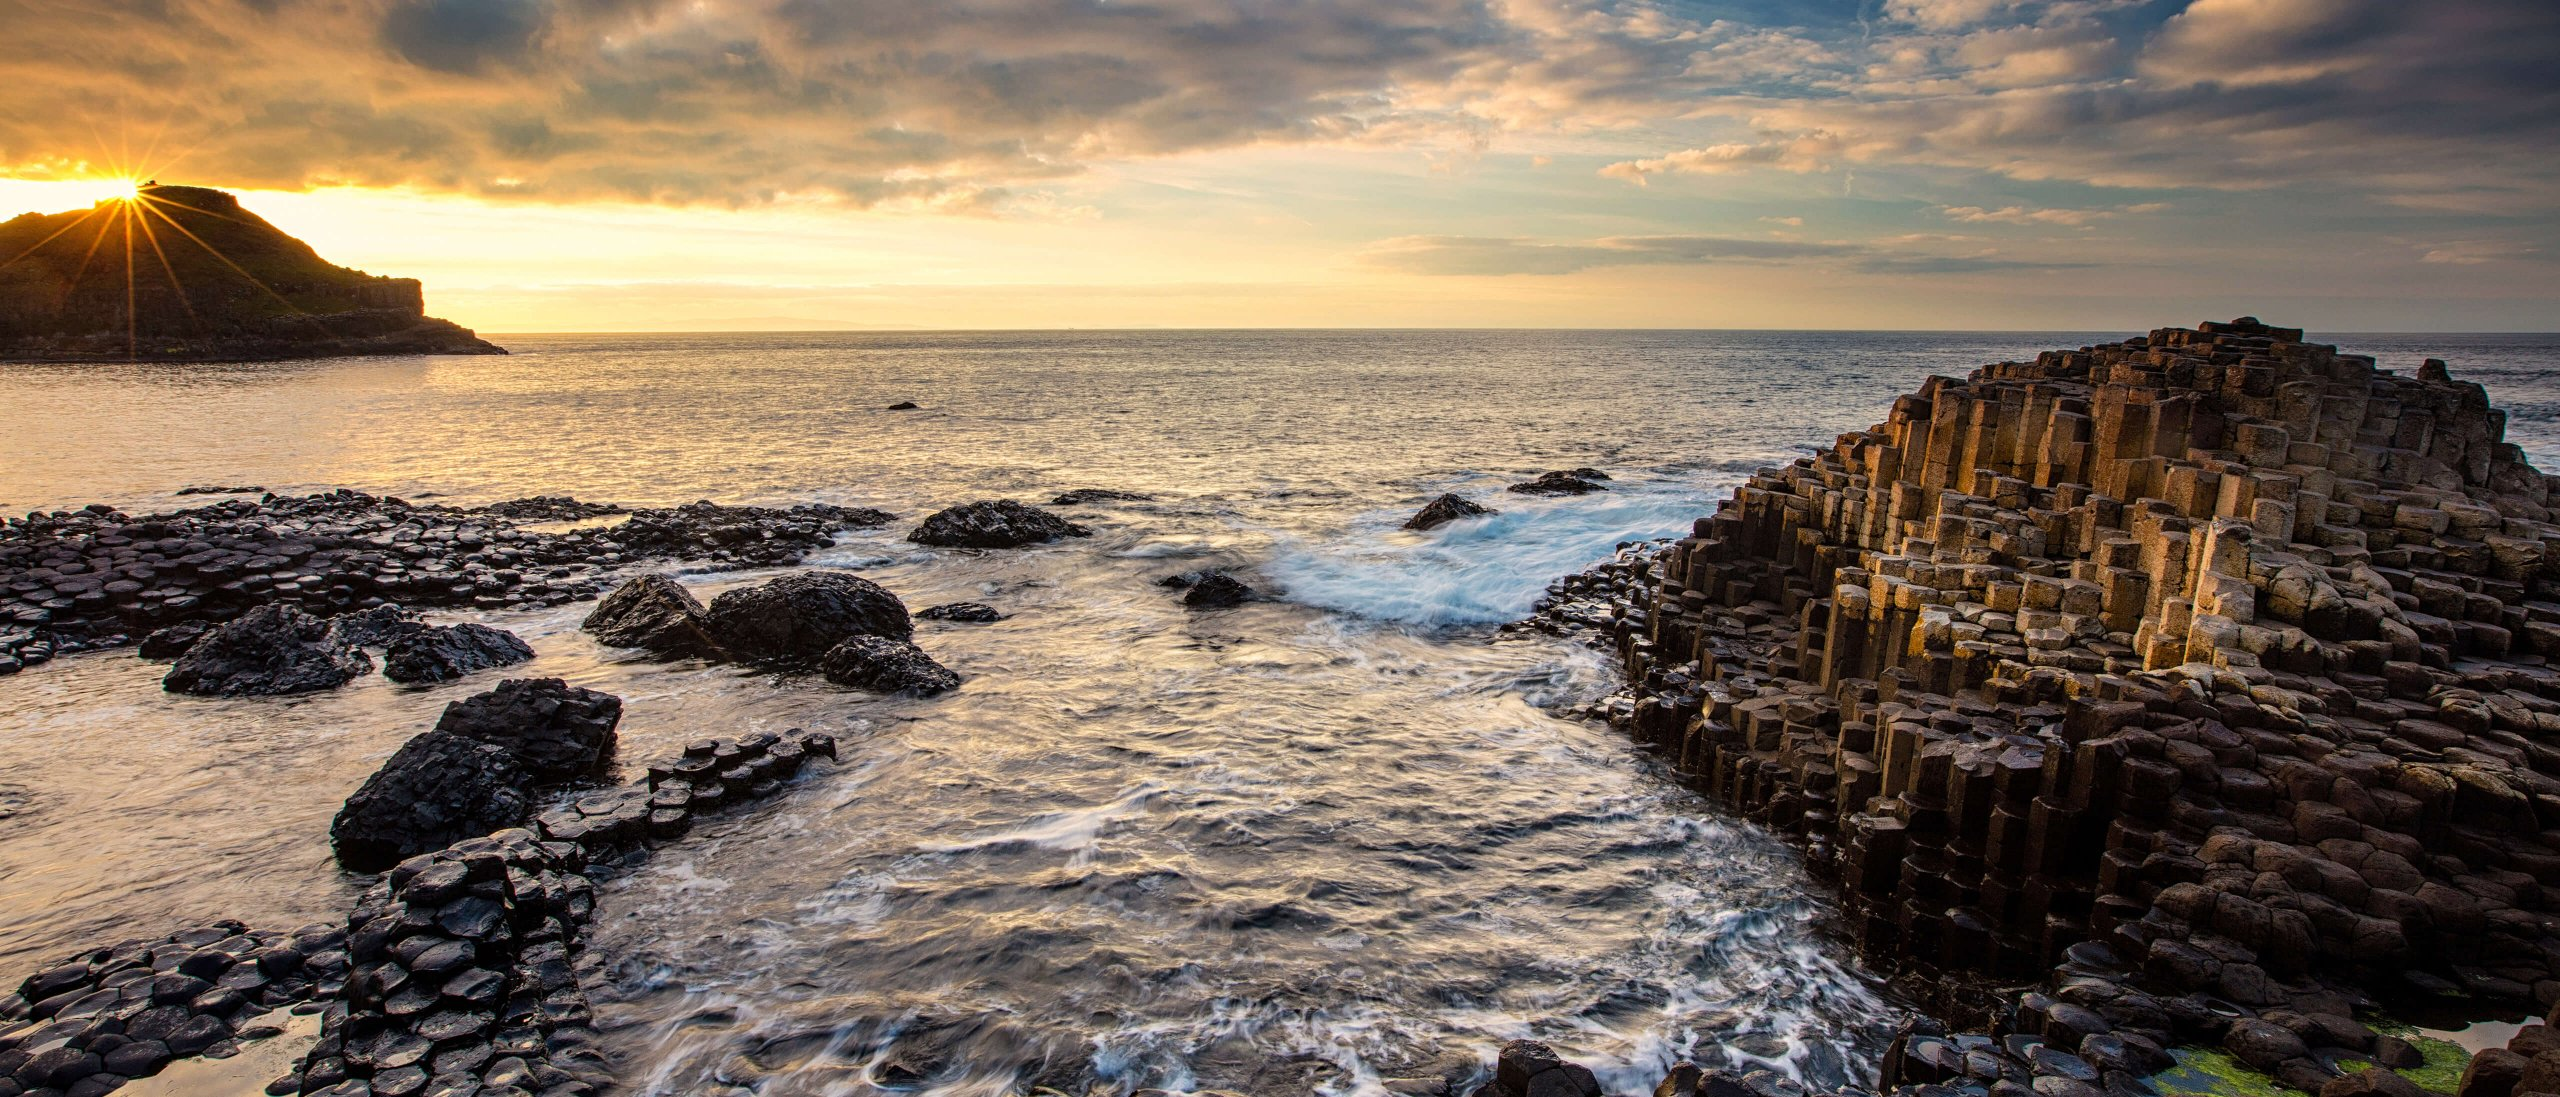 The Giant's Causeway in Northern Ireland at sunrise